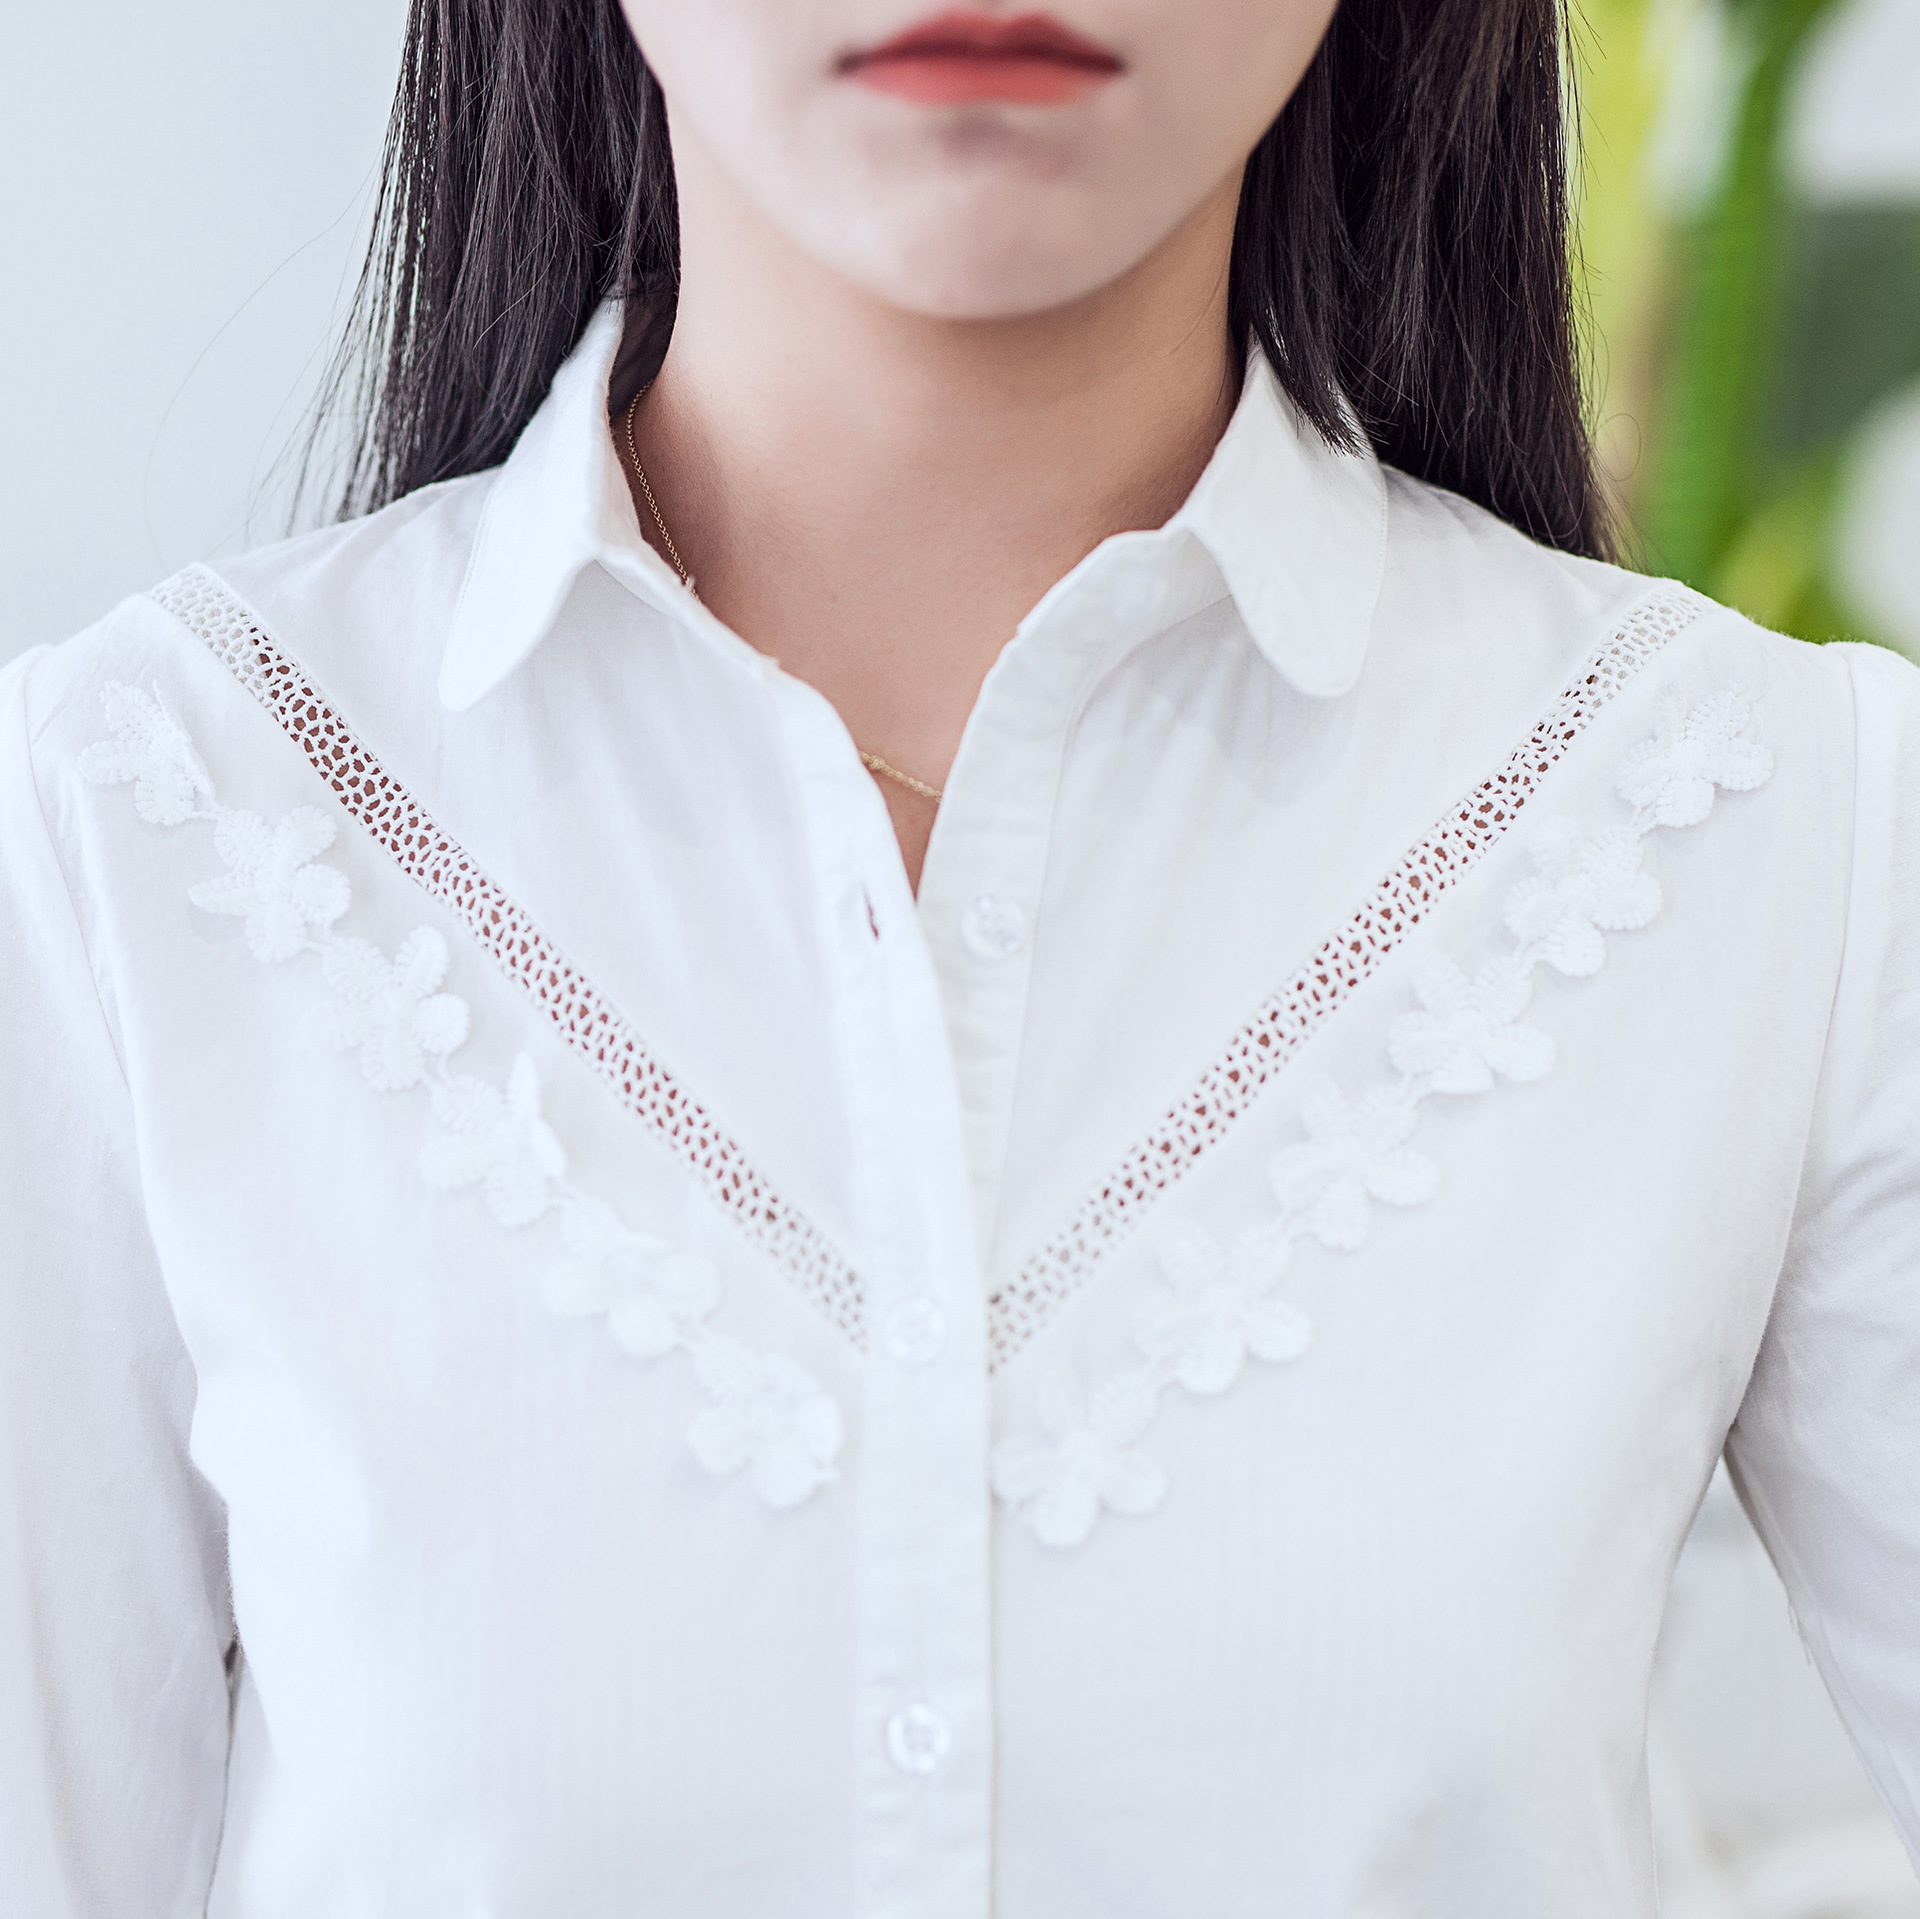 6226408ff35 Women's Blouses Tops Lace Floral Embroidery Frill Work Blouses Long Sleeve  Stand Collar Ladies Tops White Cotton Shirt Womens white-cotton-lace-top